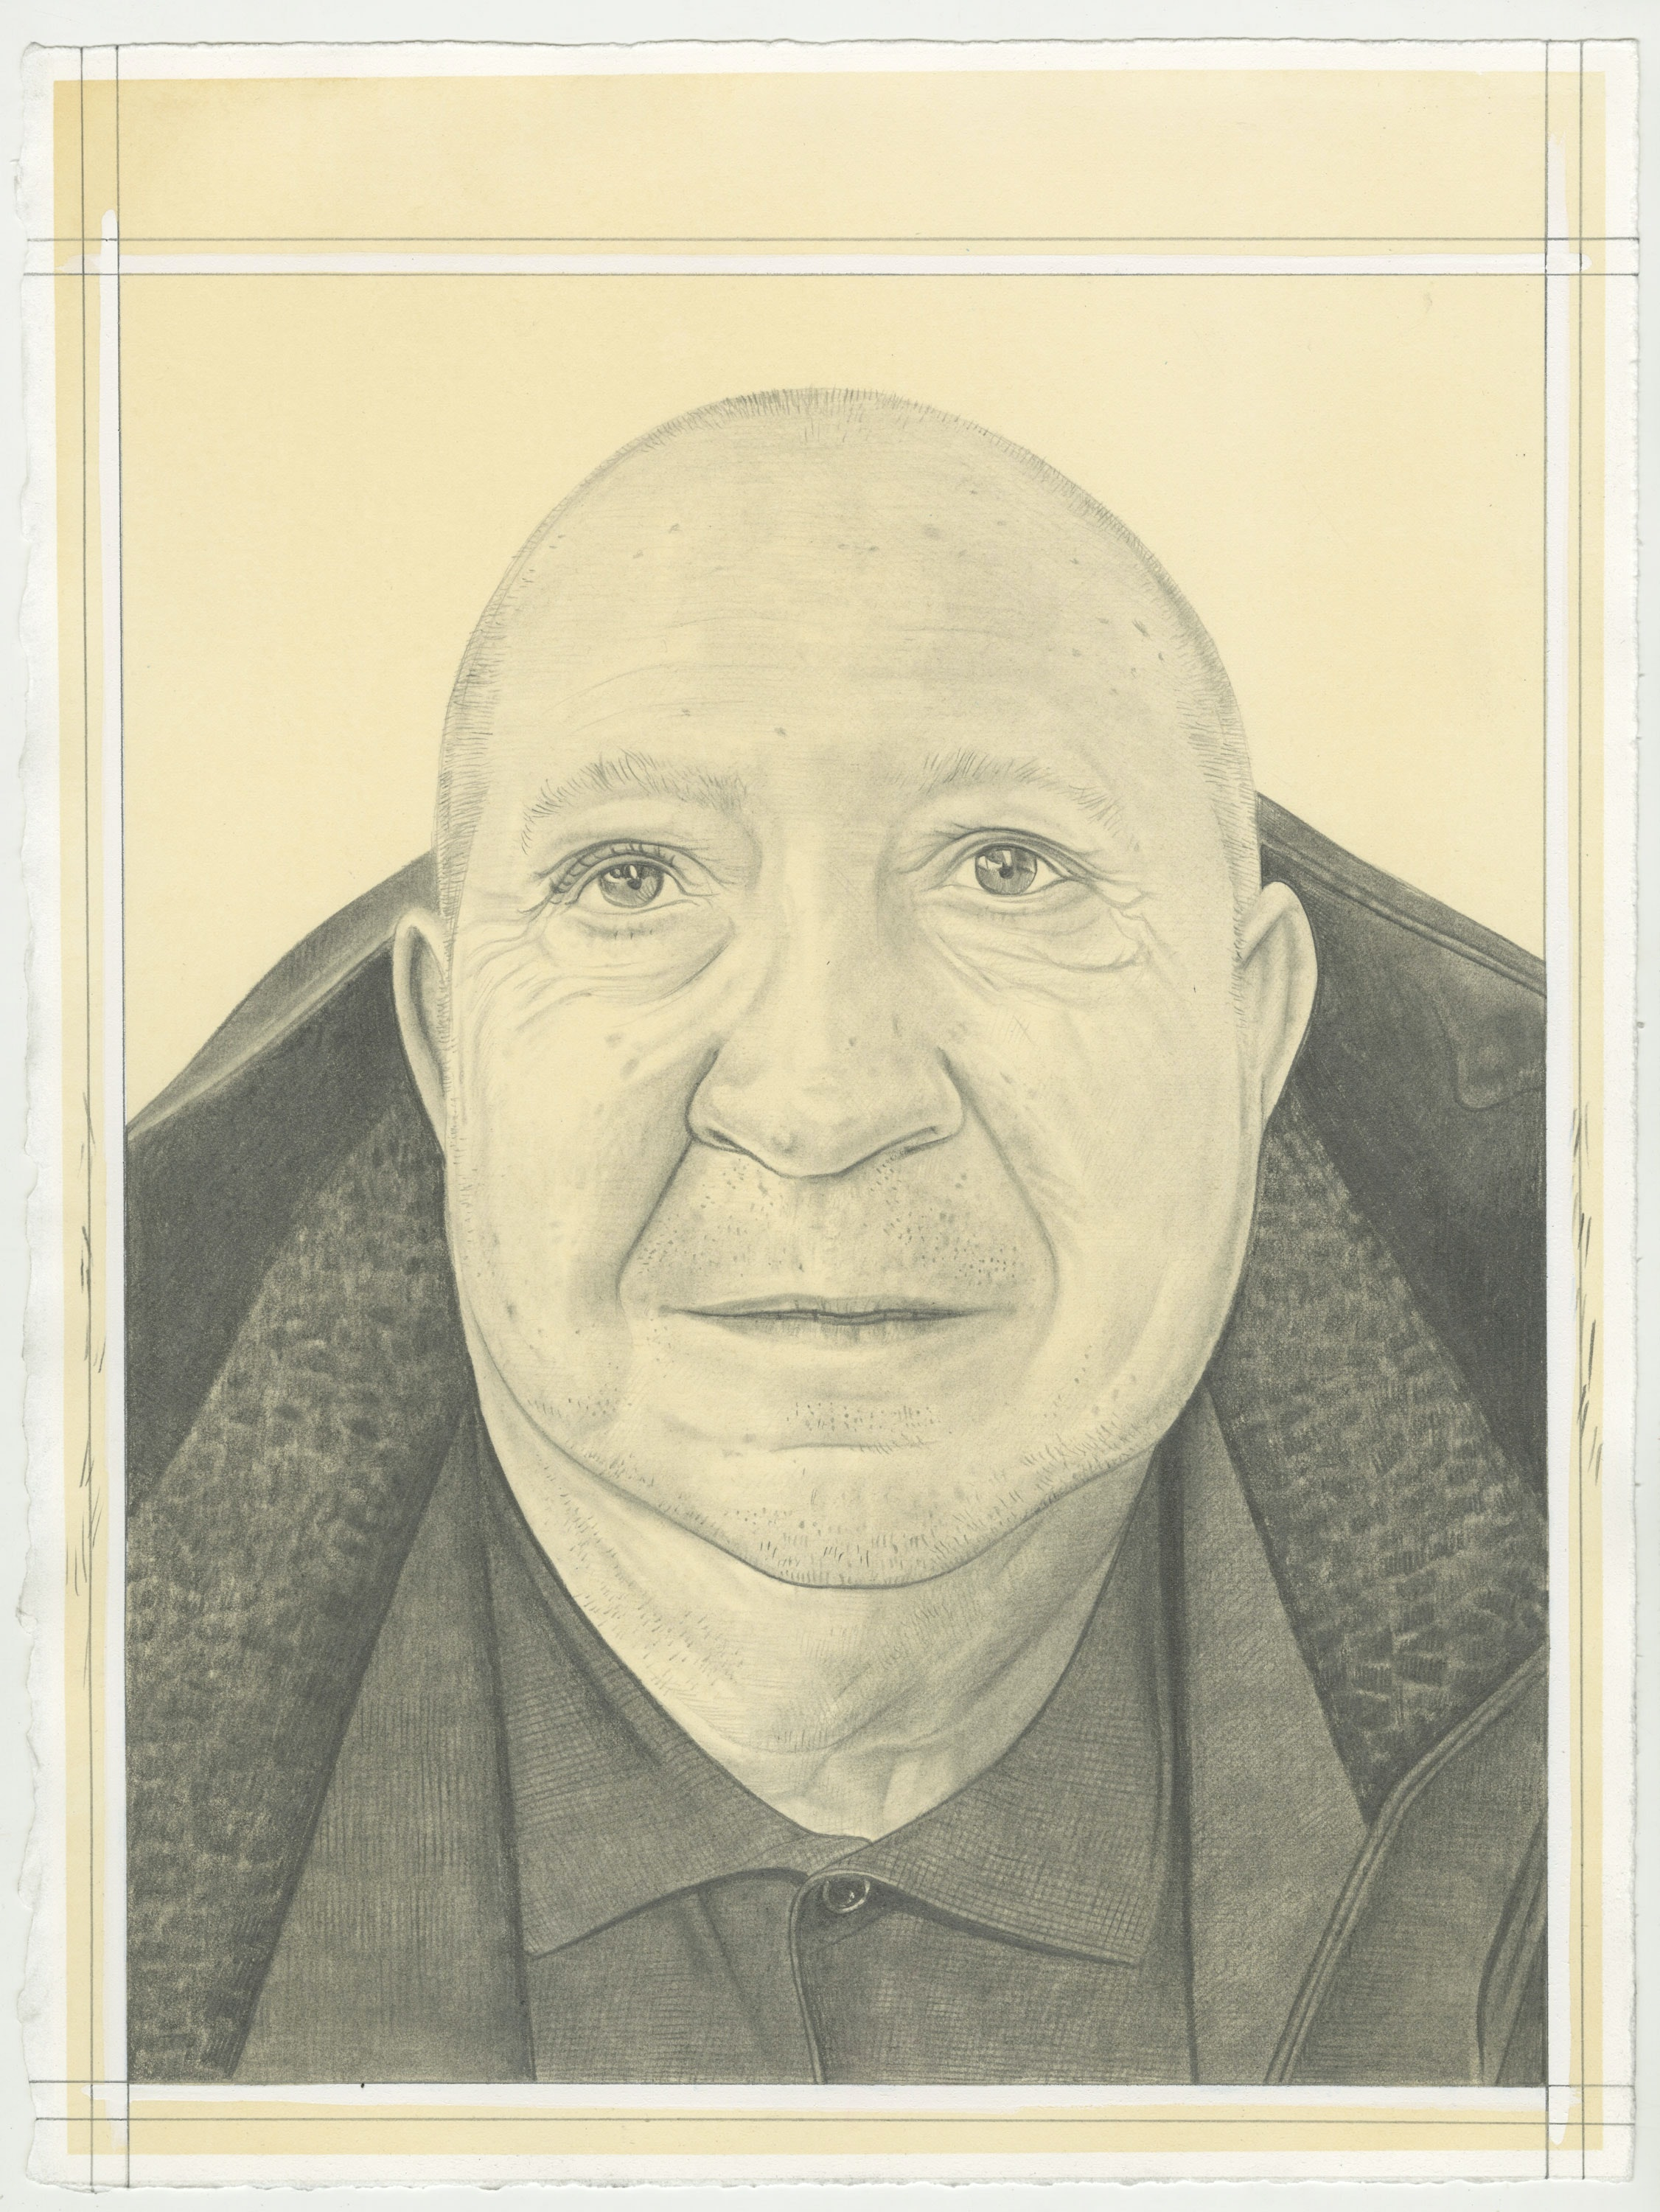 Portrait of Christian Boltanski, pencil on paper by Phong H. Bui.